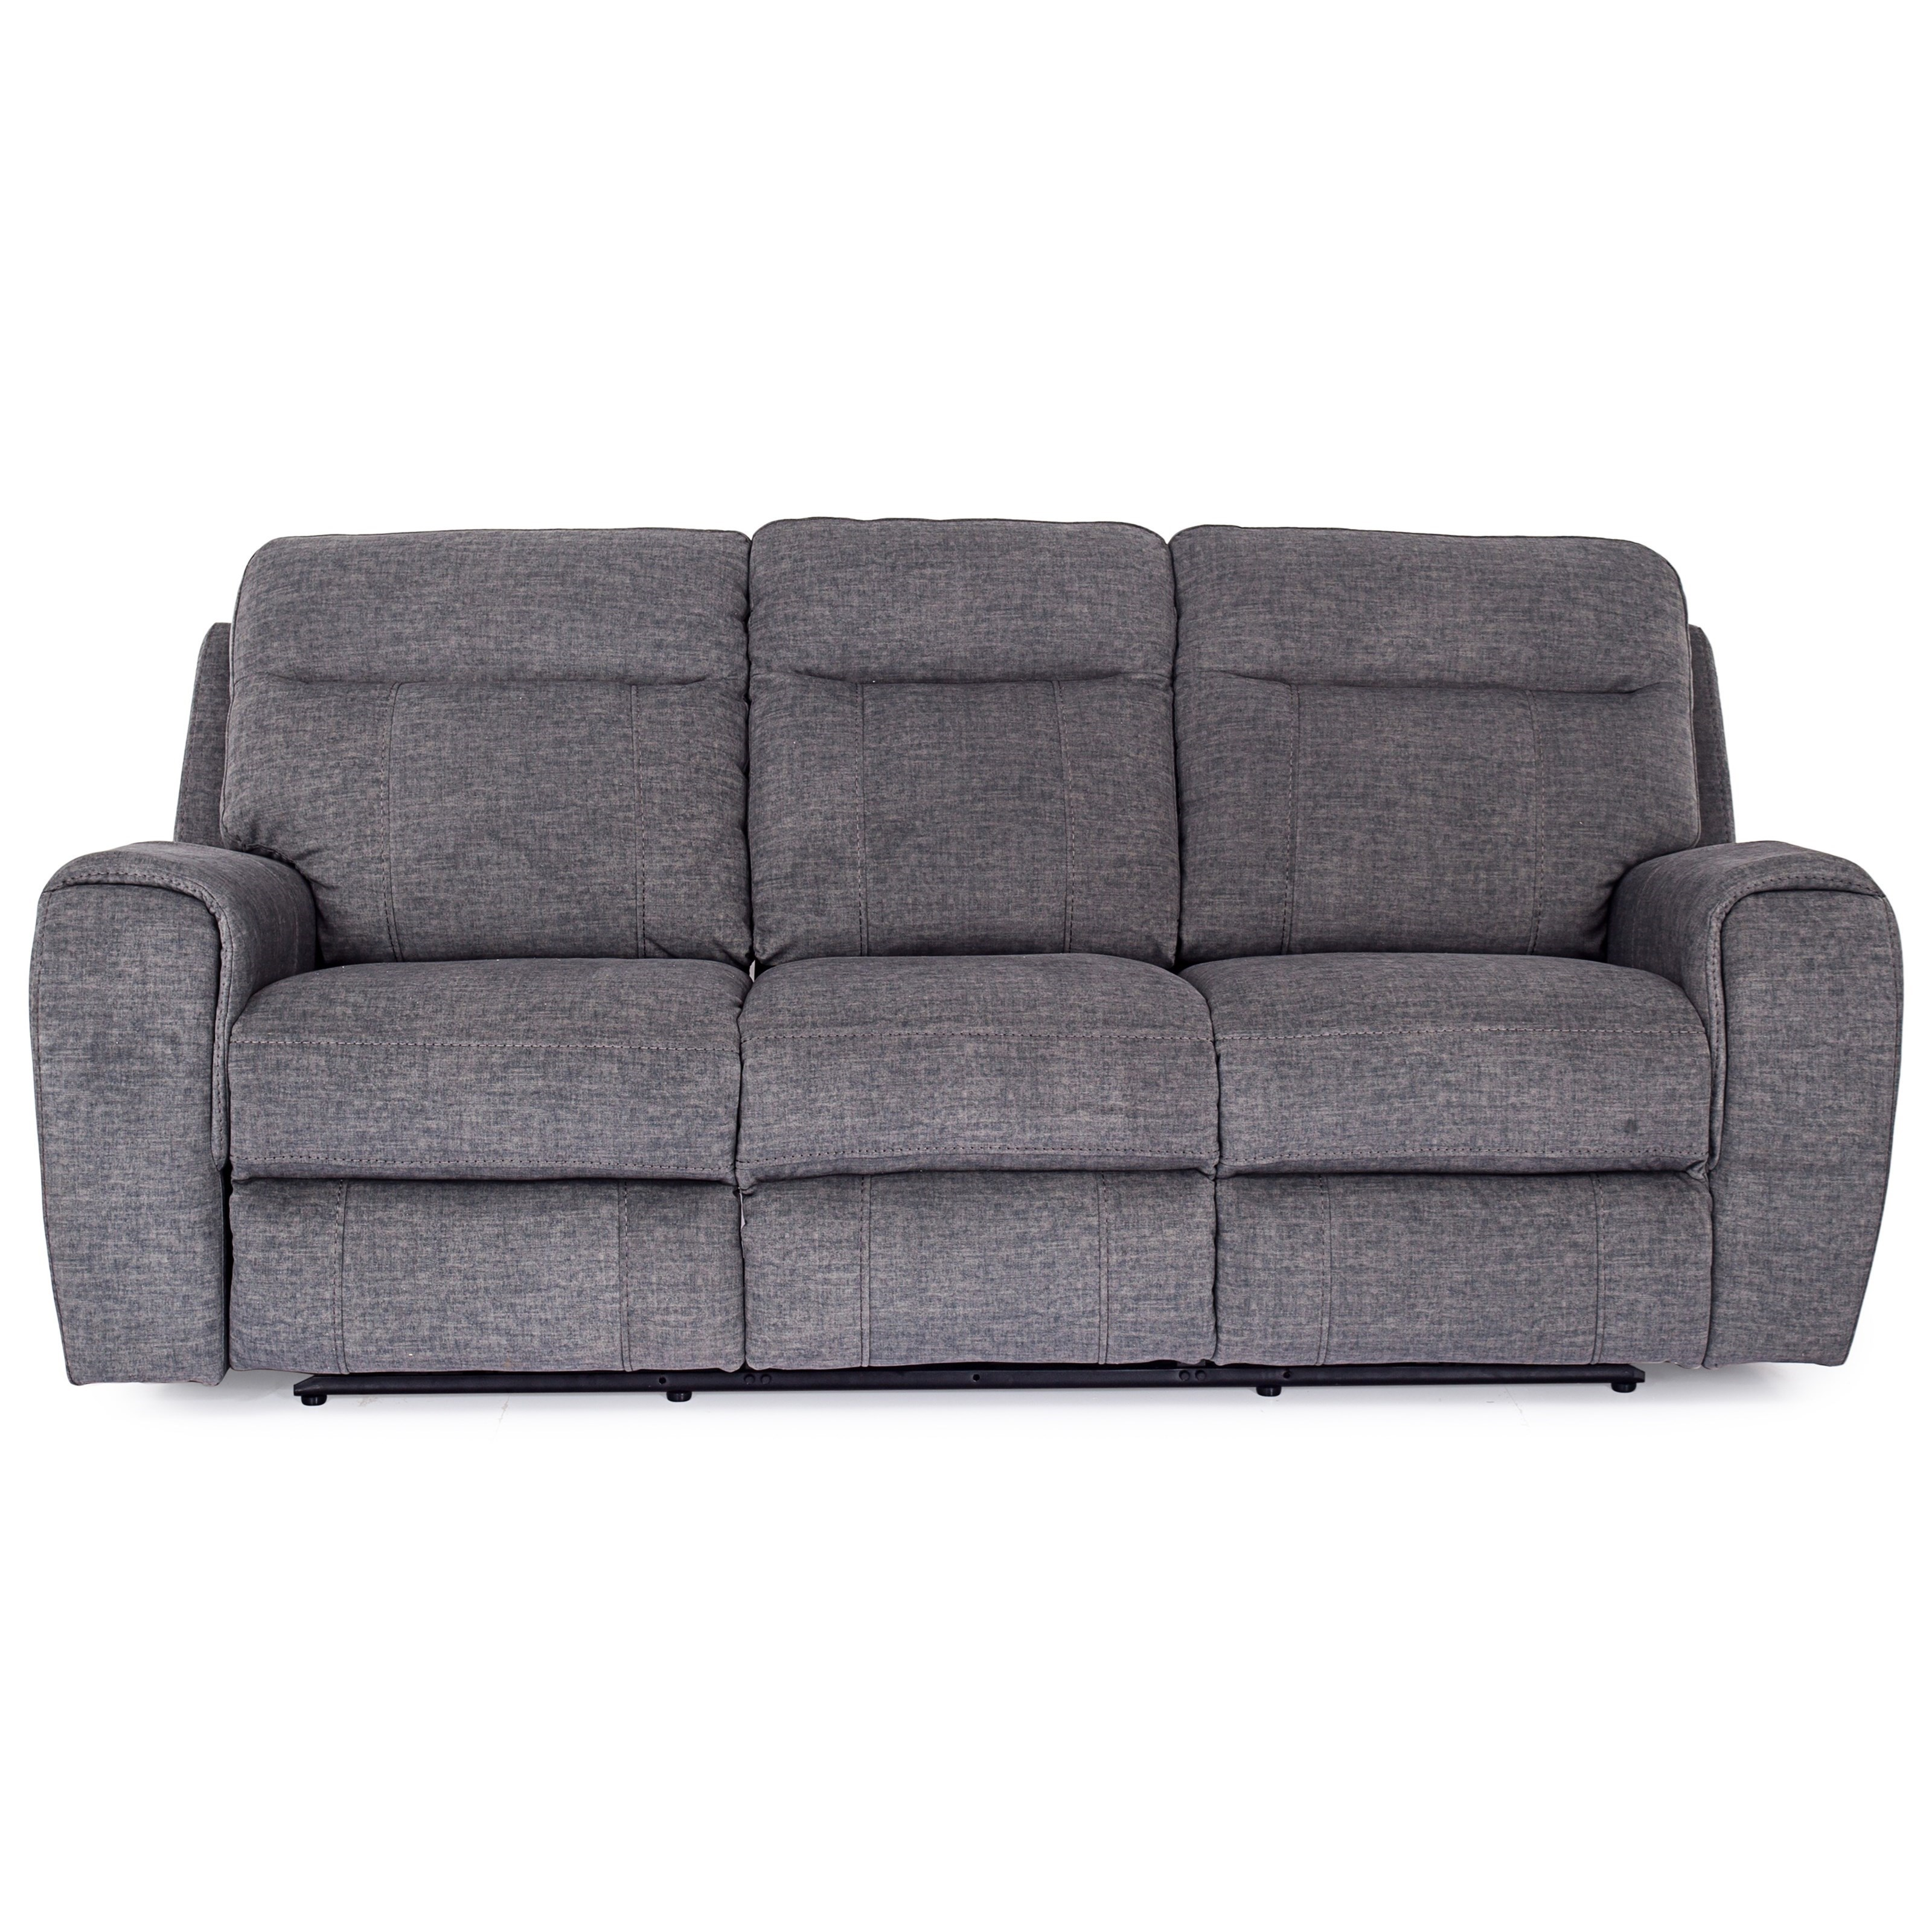 9868 Reclining Sofa w/ Power Headrests at Pilgrim Furniture City